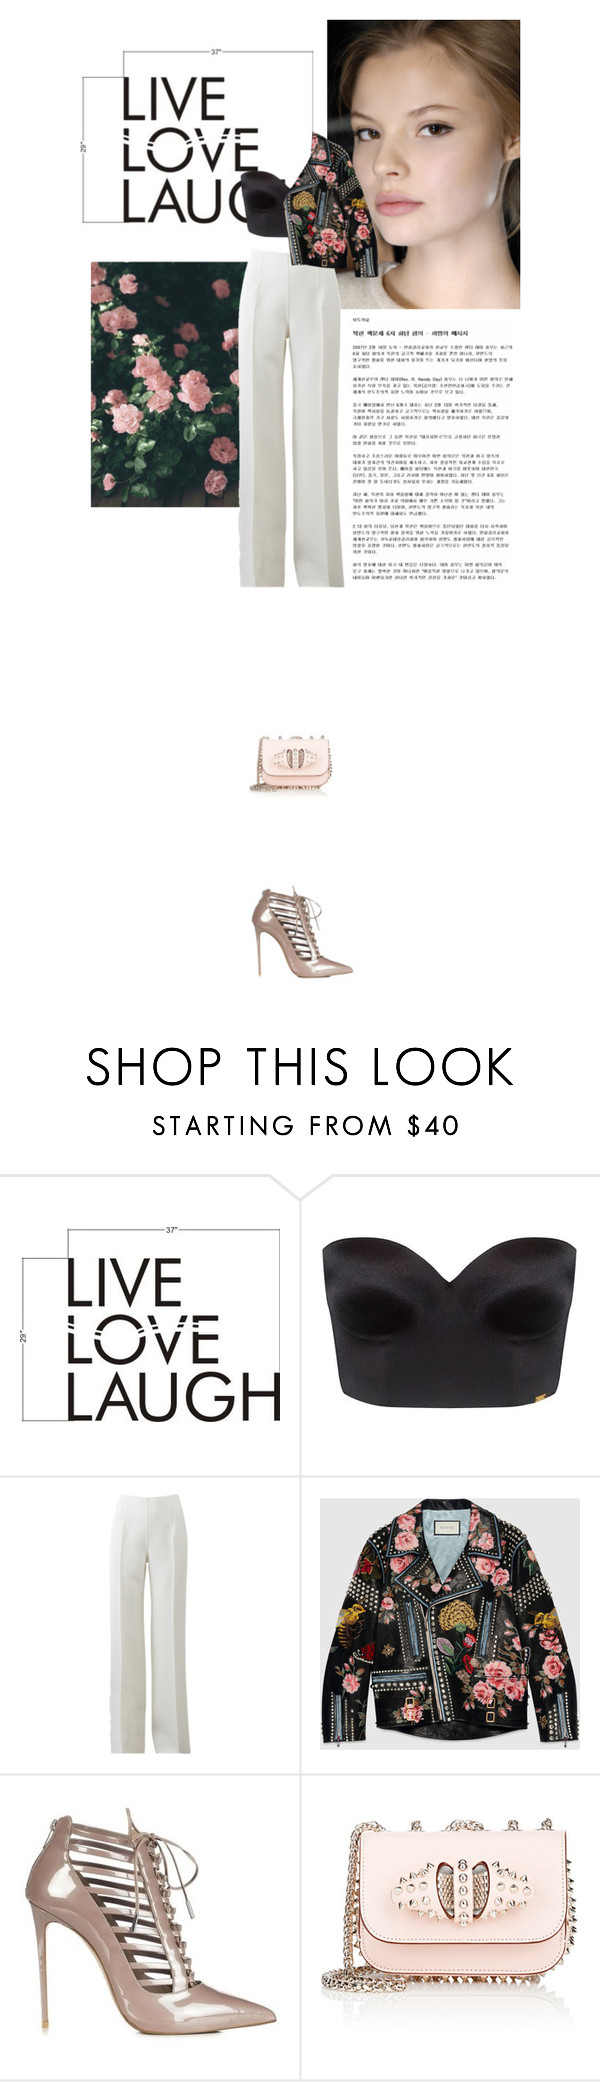 """hey"" by janchy1 ❤ liked on Polyvore featuring Magdalena, Ultimo, Michael Kors, Gucci, Christian Louboutin, women's clothing, women, female, woman and misses"